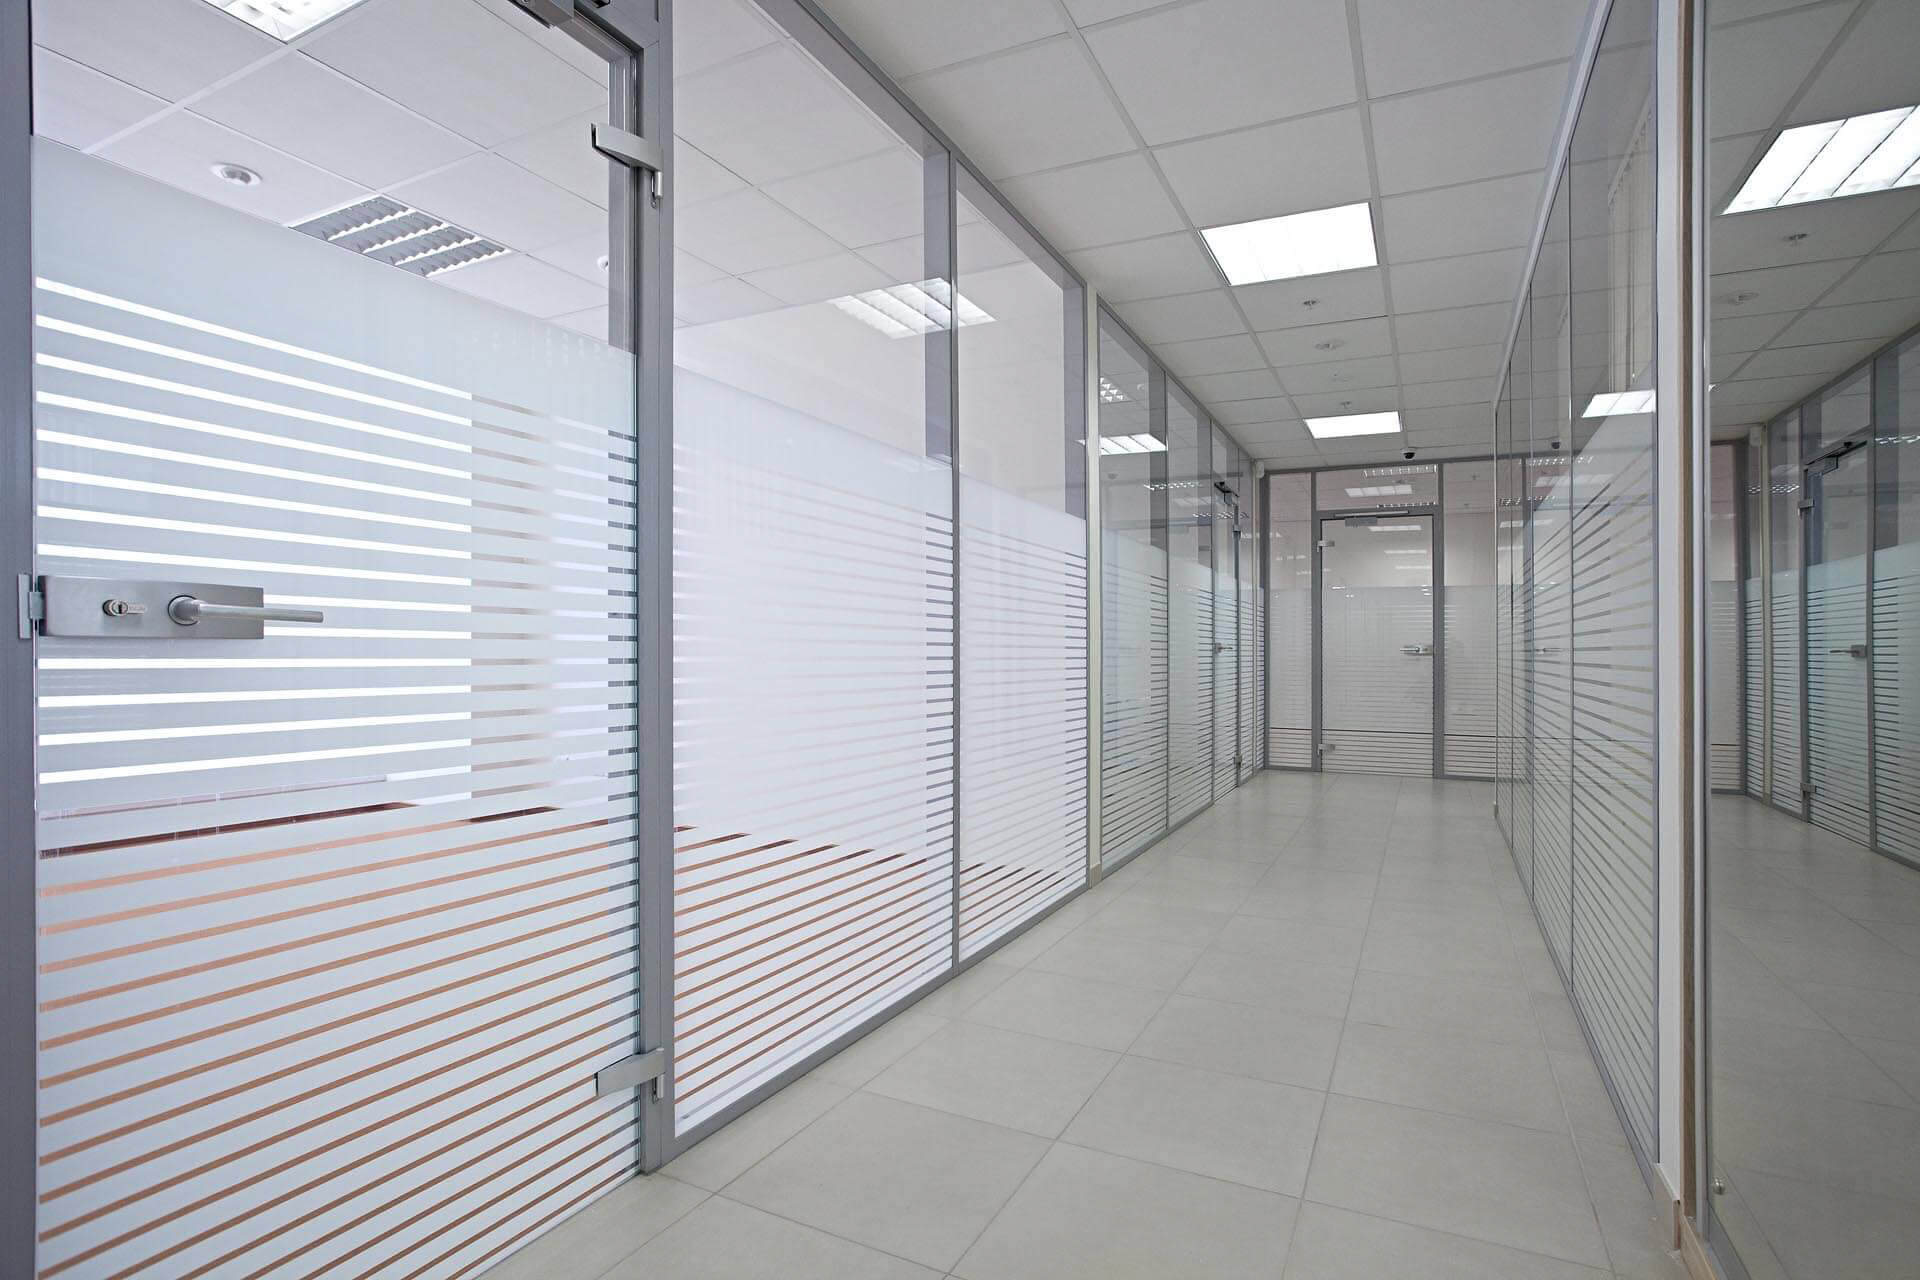 Office corridor with glazed partitions with stripped manifestations for privacy screens.